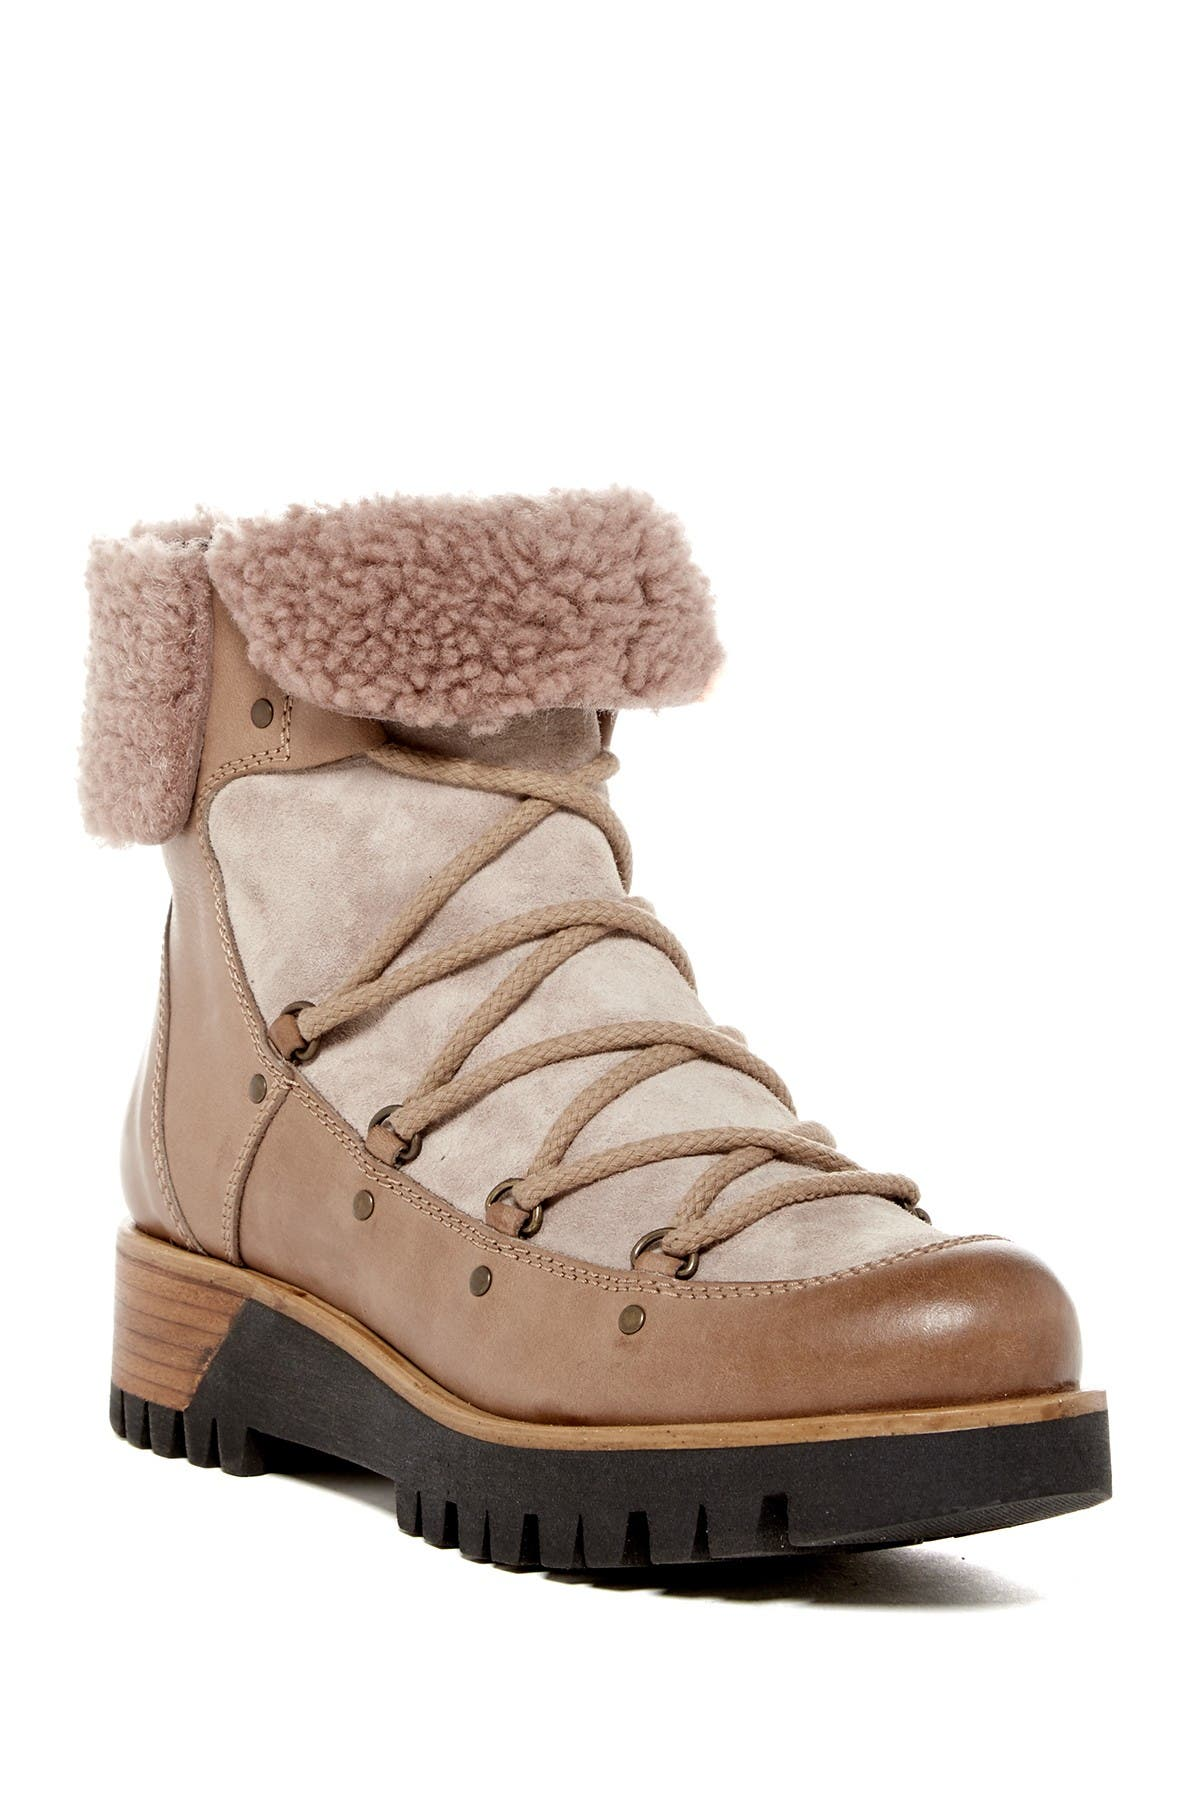 Image of Manas Genuine Sheepskin Trimmed Short Platform Boot